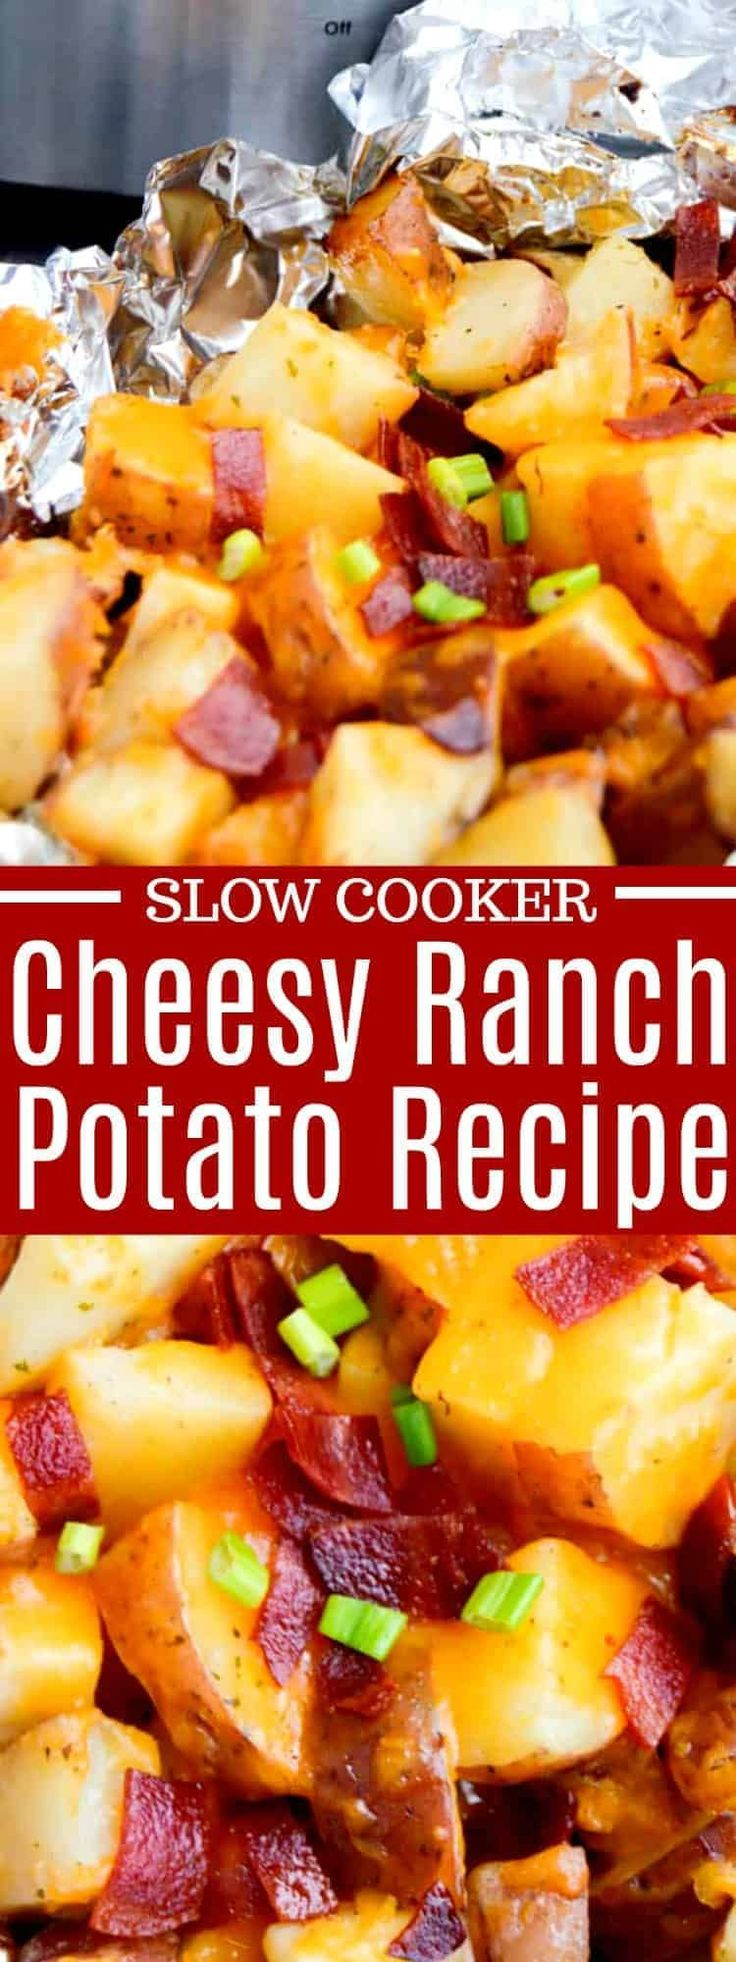 Mar 26, 2020 – These Slow Cooker Cheesy Ranch Potatoes are tossed in ranch seasoning then covered with cheese and bacon….